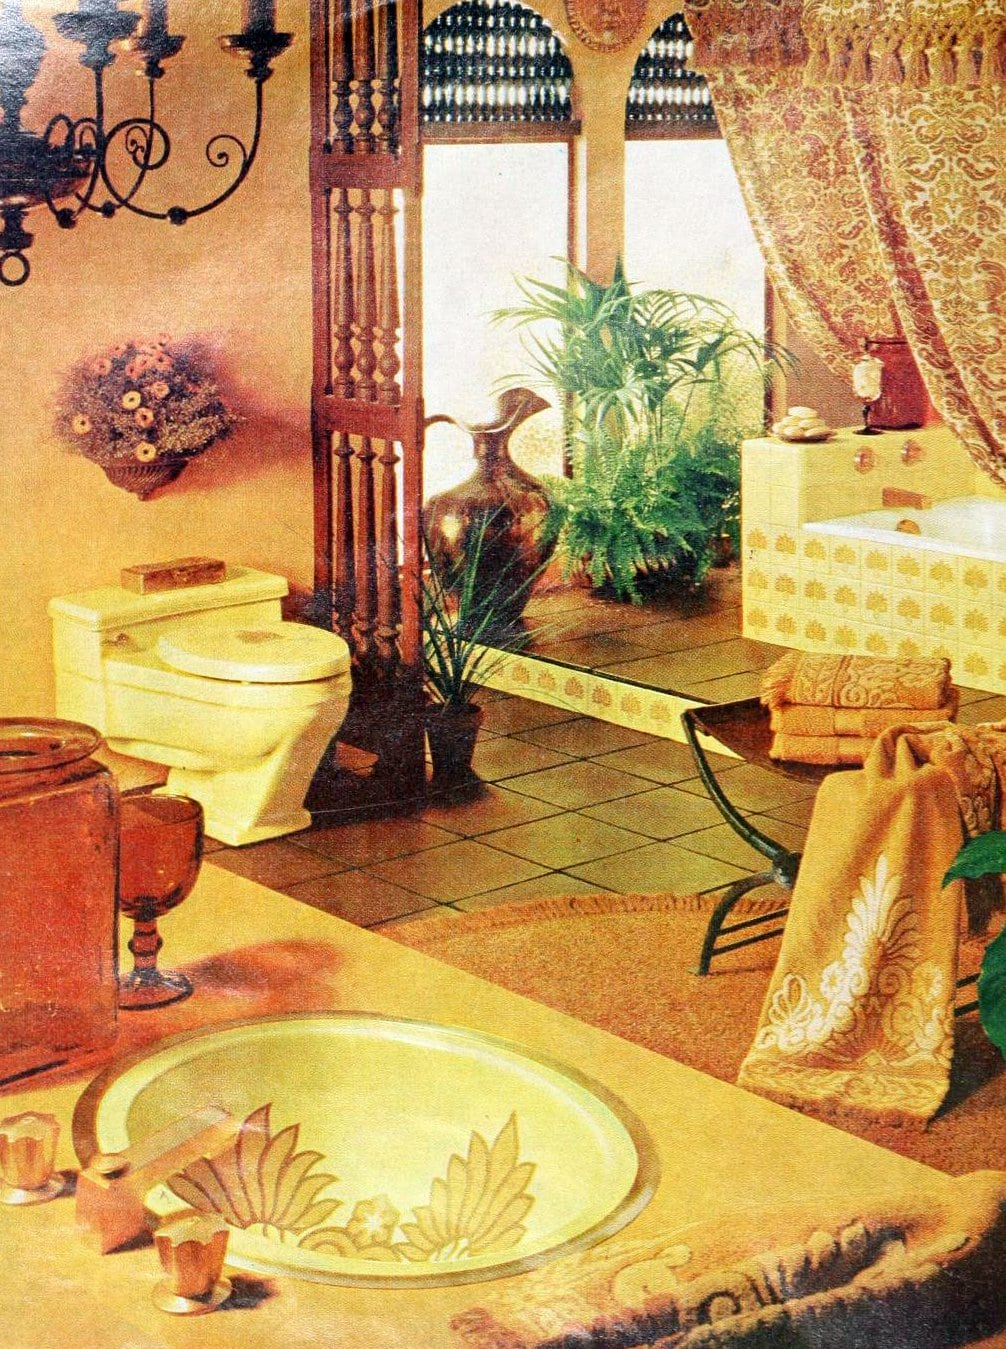 Retro yellow bathroom decor with patterned tile and sink from the 60s